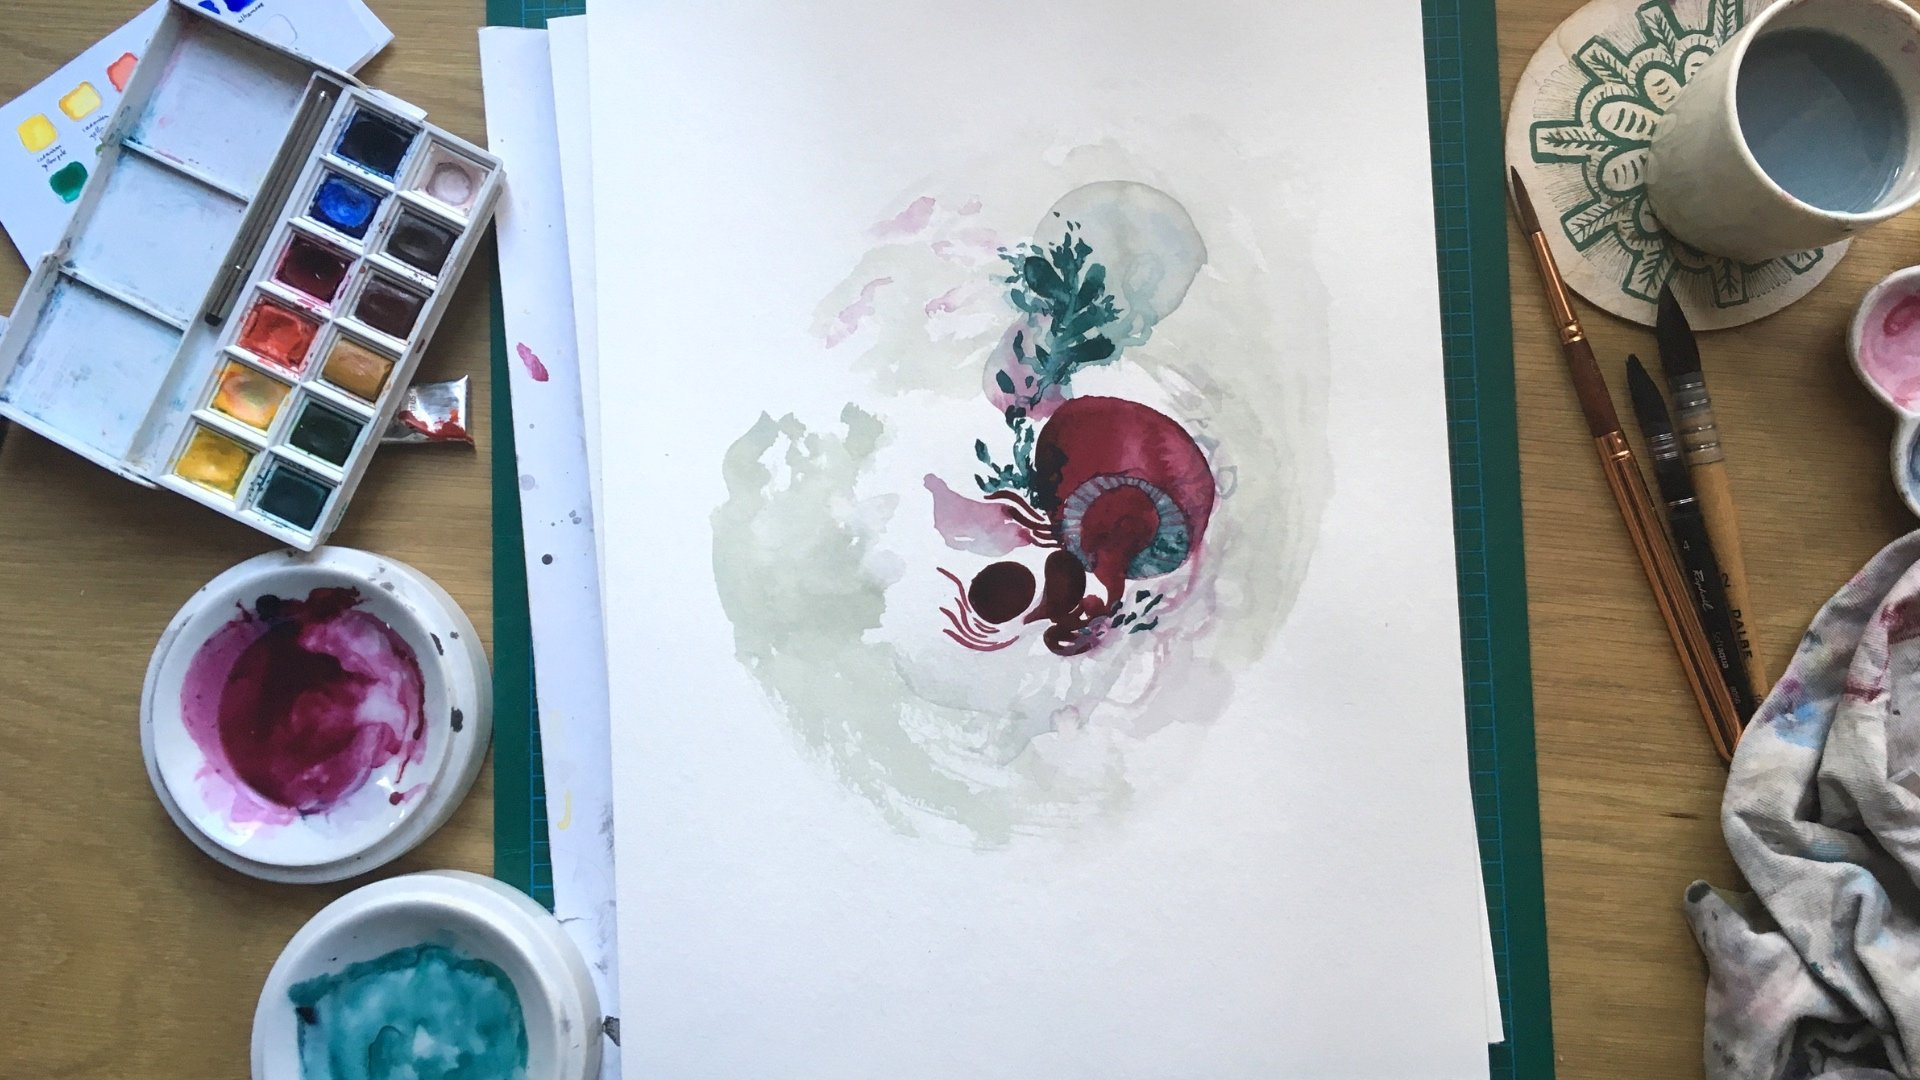 Abstract Watercolor Paintings: Explore Through Freeform & Planned Process